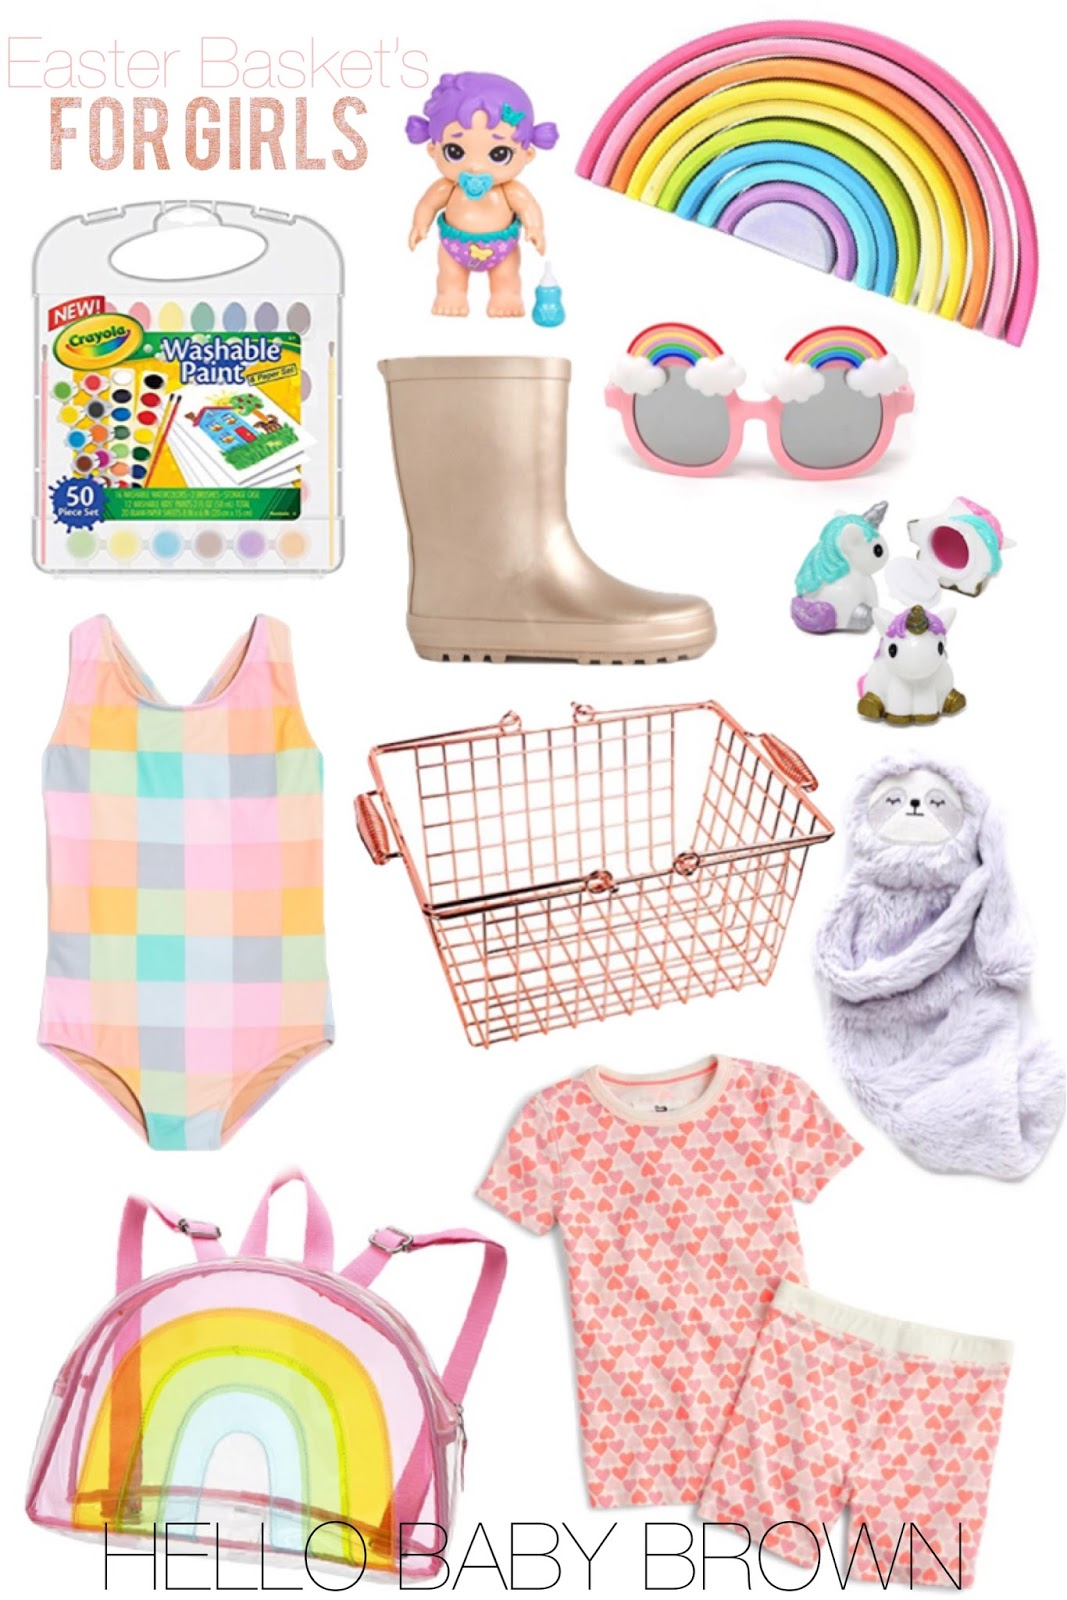 Hello baby brown easter basket ideas for girls baby phayre is going to go nuts over this baby wooden rainbow stacker the rose gold rain boots i posted above have gotten some negle Images